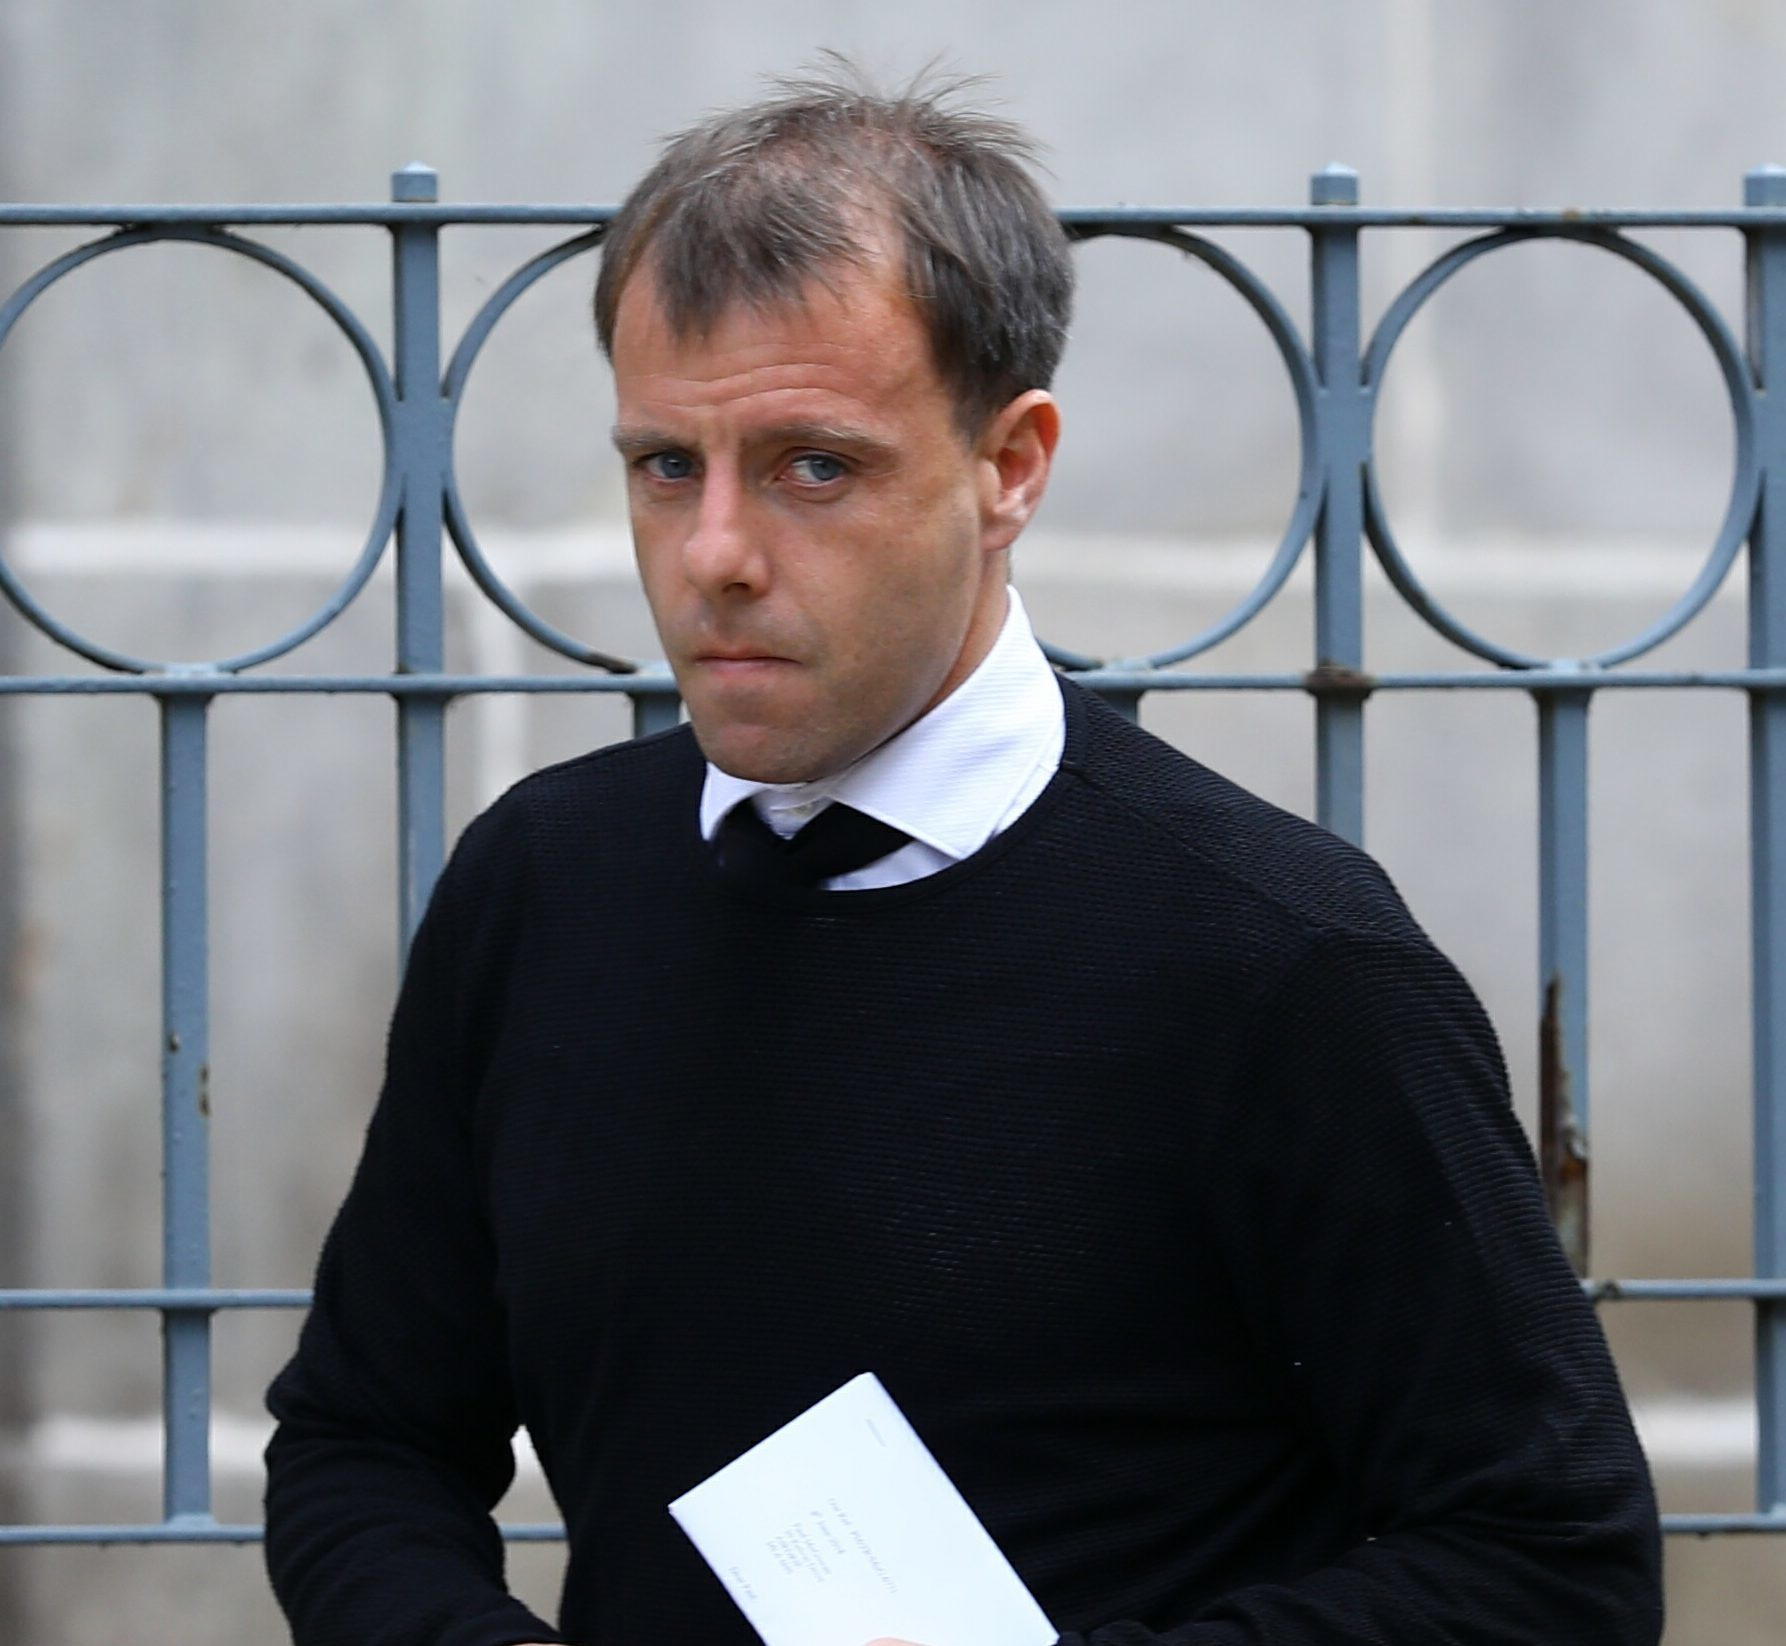 Dundee FC player Paul McGowan arriving at Dundee Sheriff Court today for sentencing